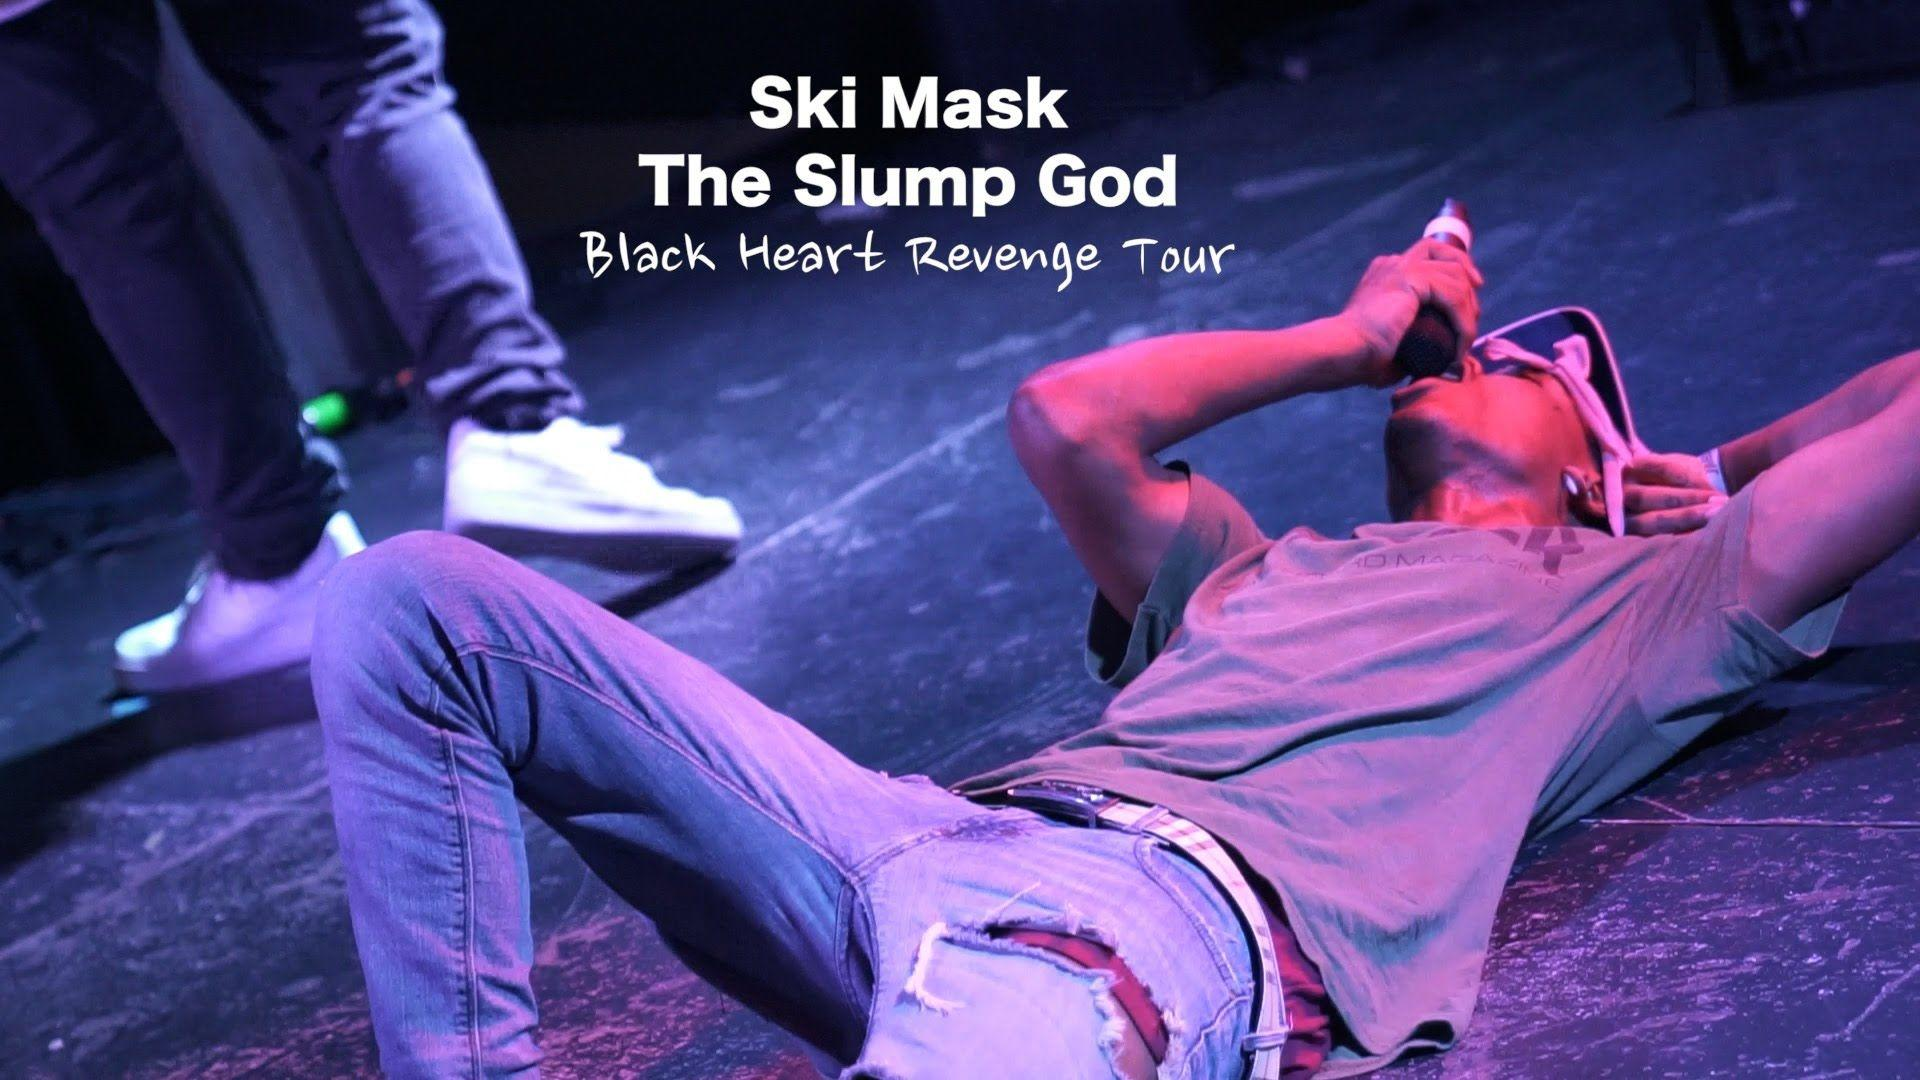 Pt.2 Ski Mask The Slump God Performs Live